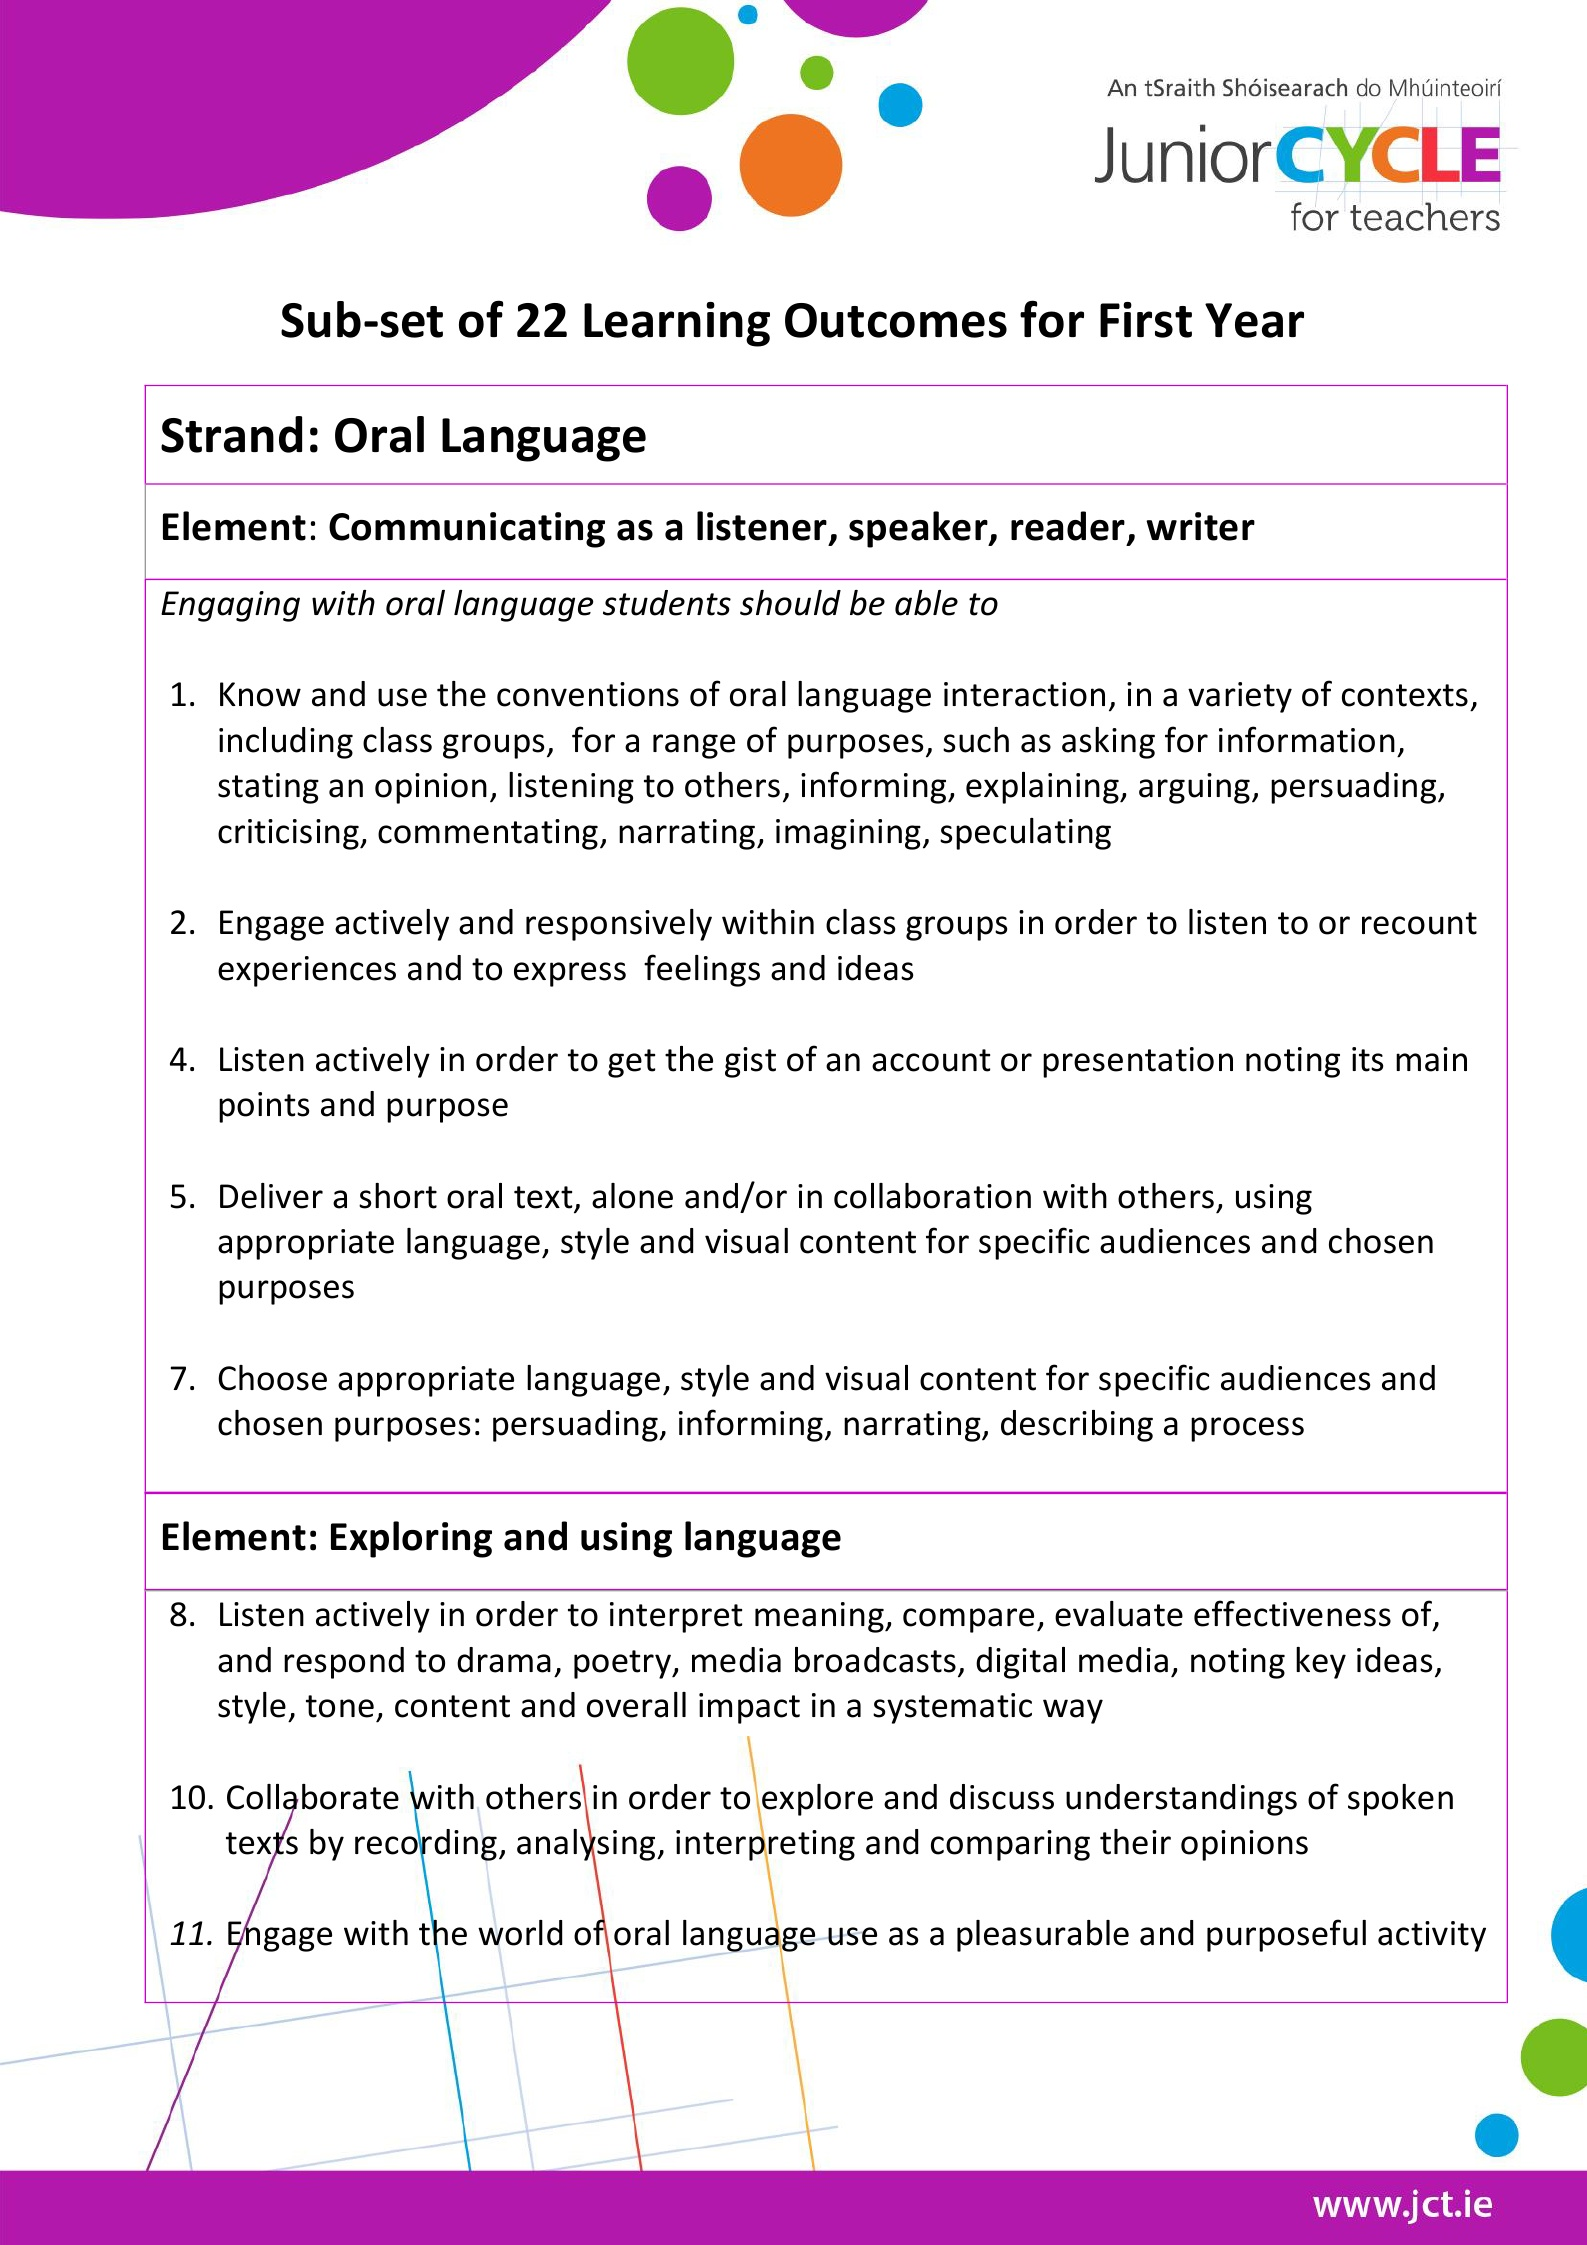 Sub set of 22 Learning Outcomes for 1st year English 2016